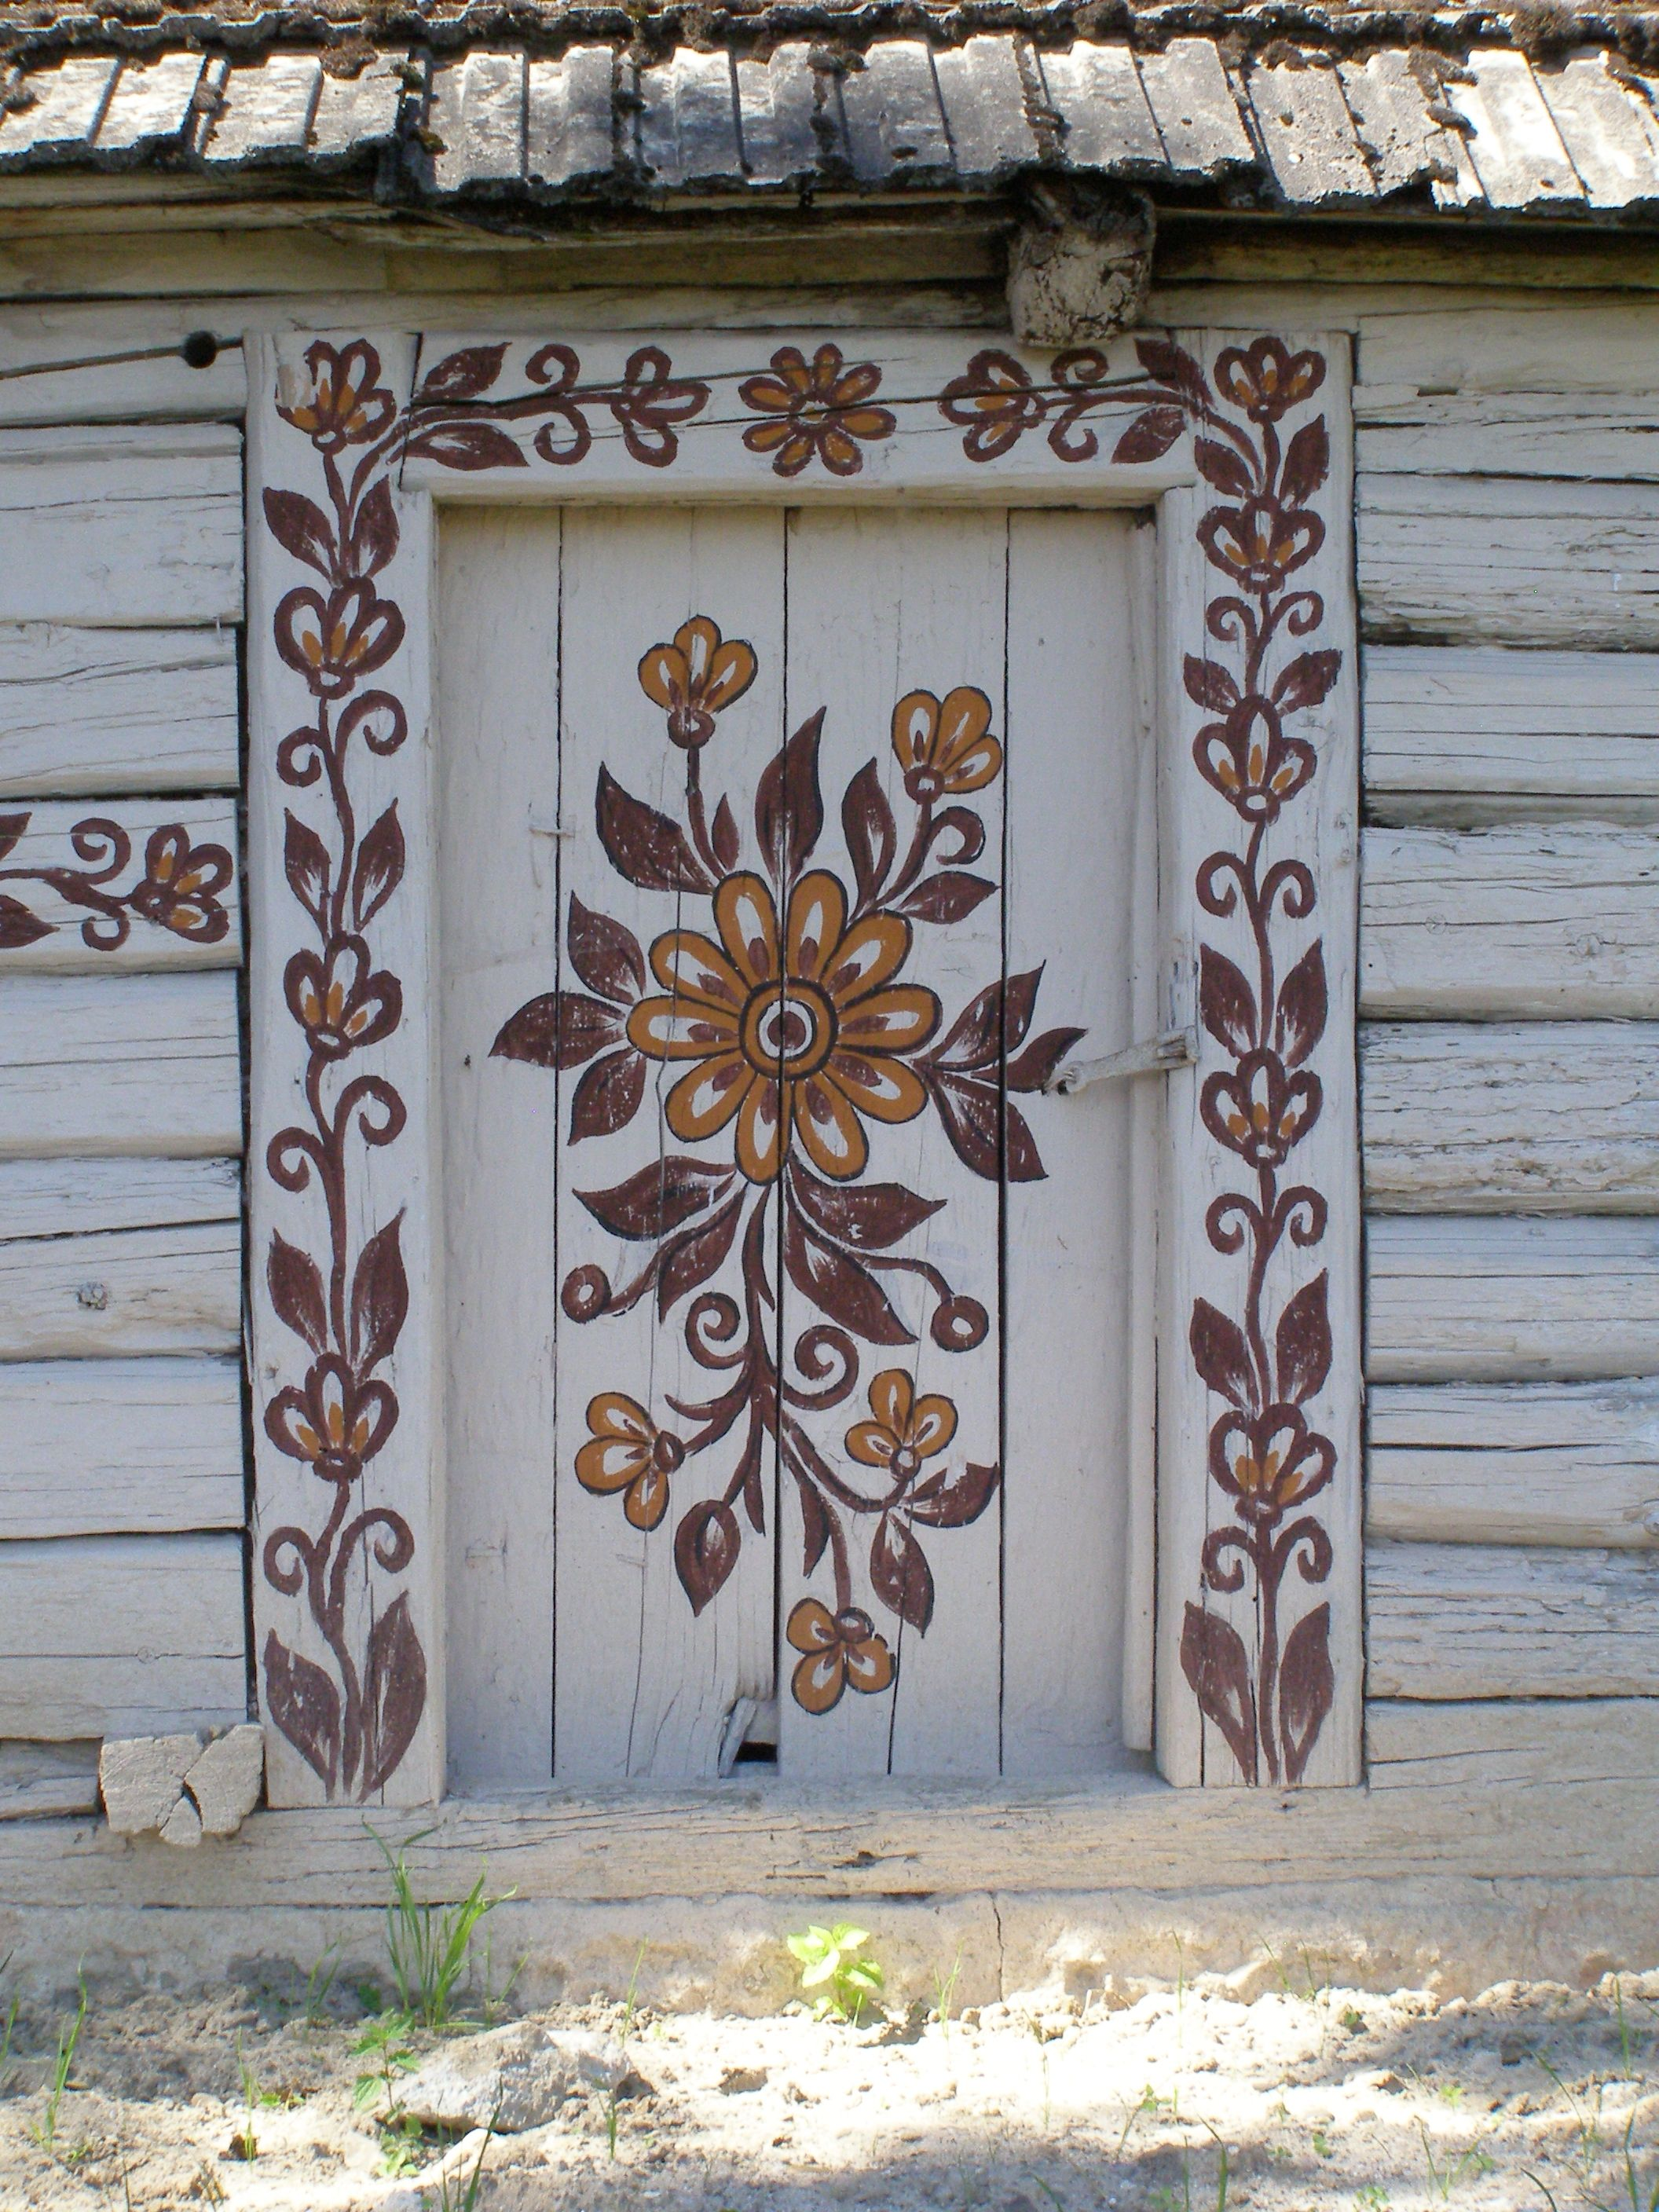 Painted Barn door in Zalipie Poland. OMG, how great would this be painted on the inside on a door? Ideas...